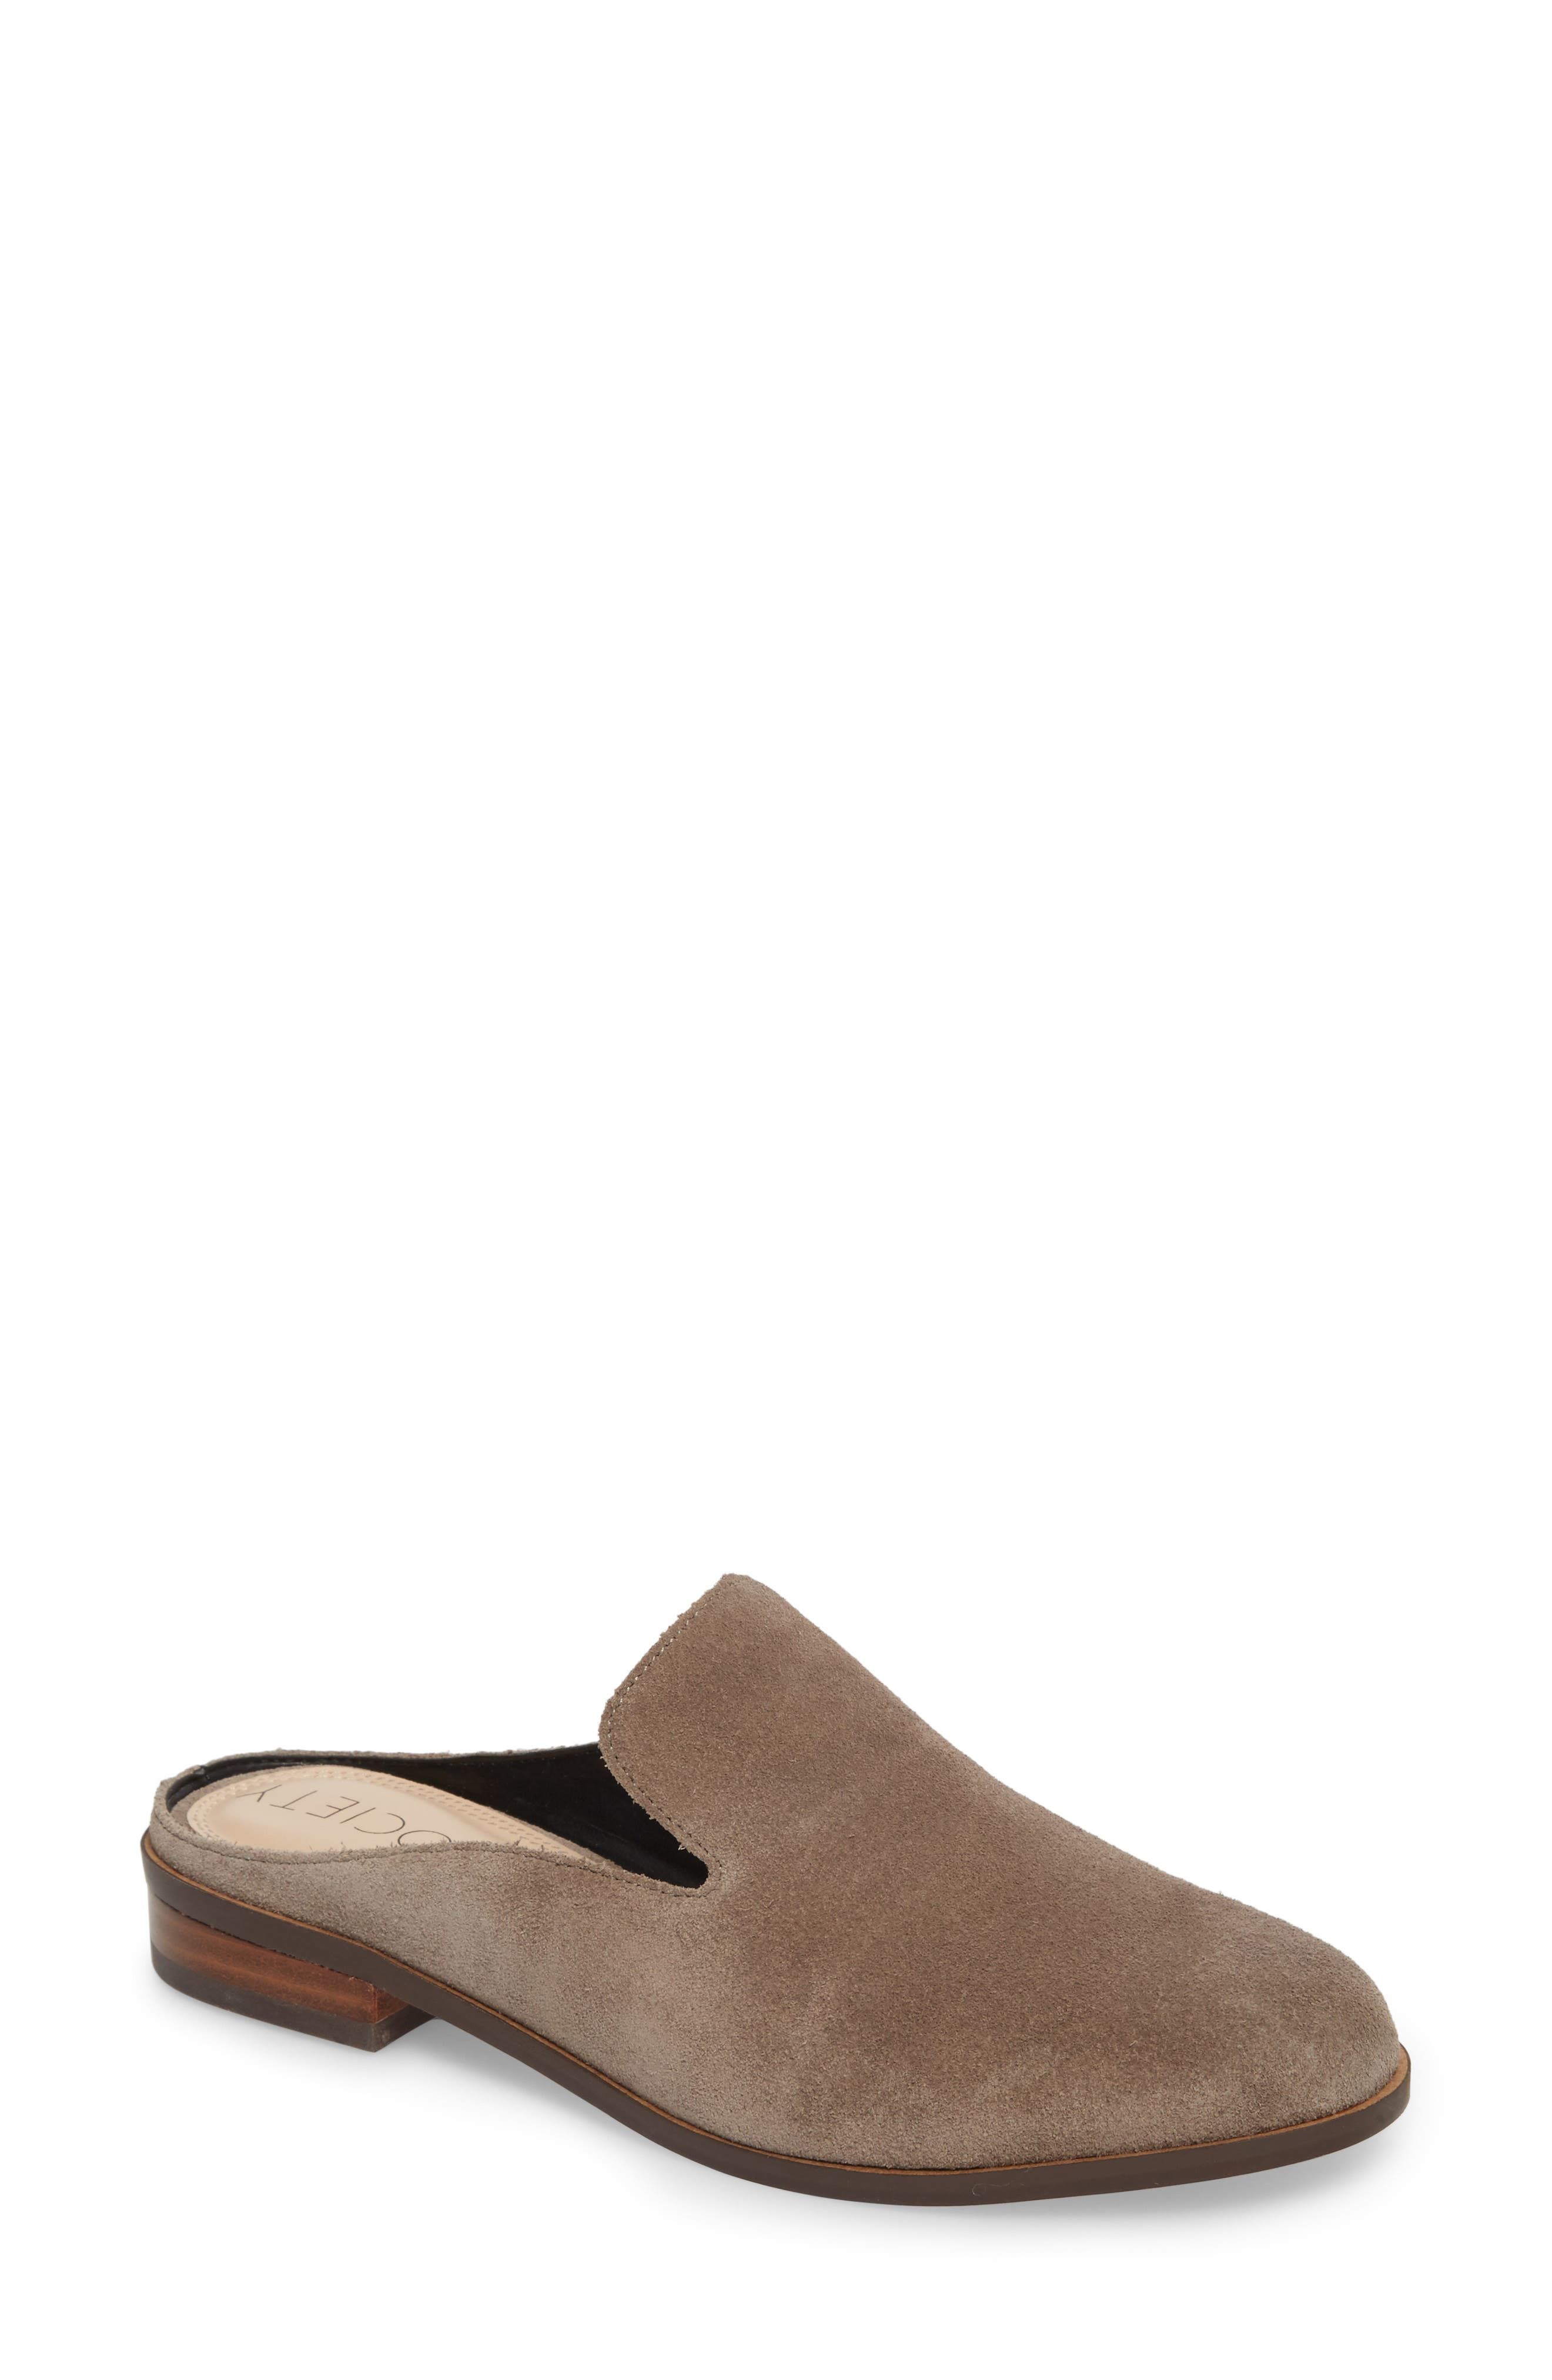 Esther Loafer Mule,                             Main thumbnail 1, color,                             020